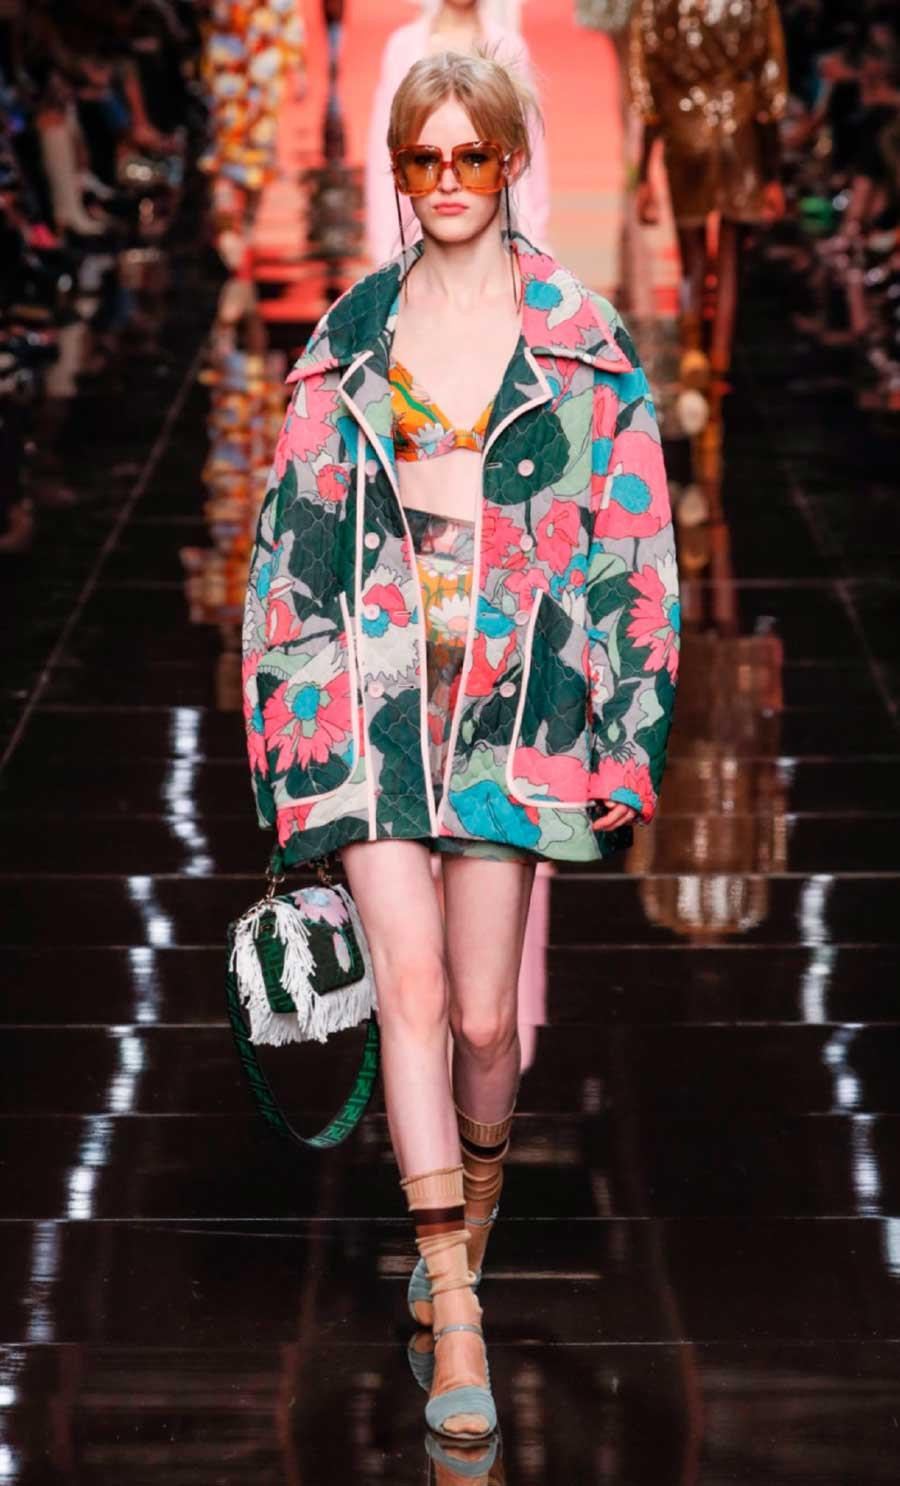 fendi-primavera-verano-2020-paris-fashion-week